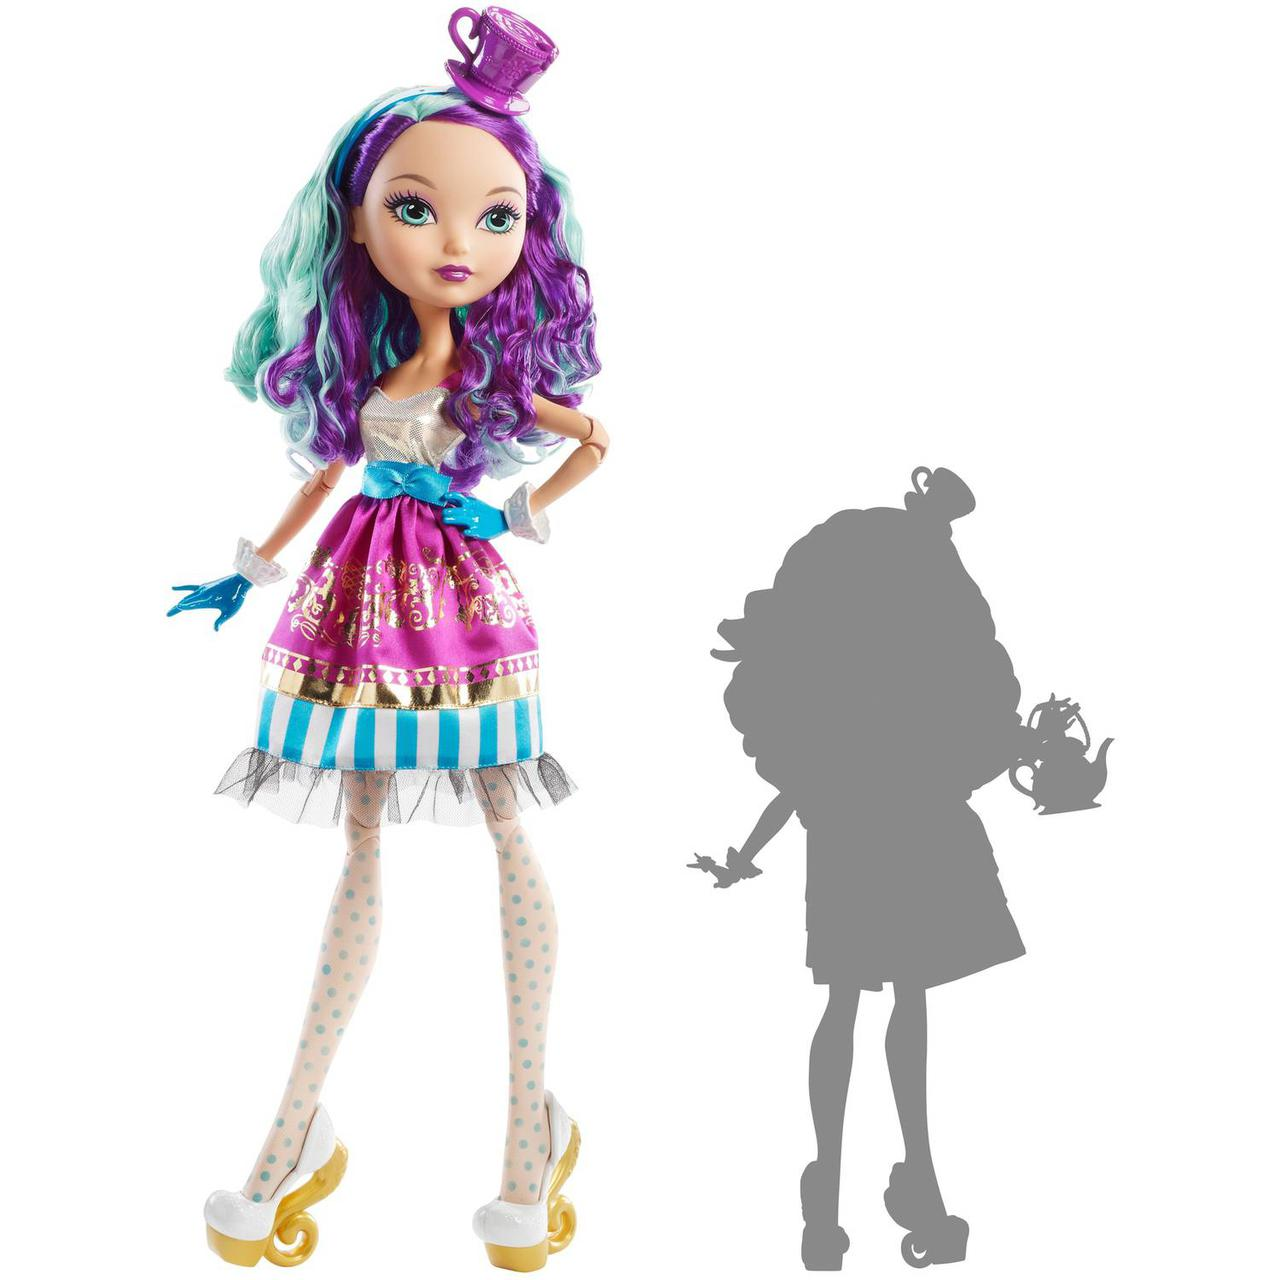 Кукла Ever After High Madeline Hatter 17 Эвер Афтер Хай Меделин Хэттер 43 см